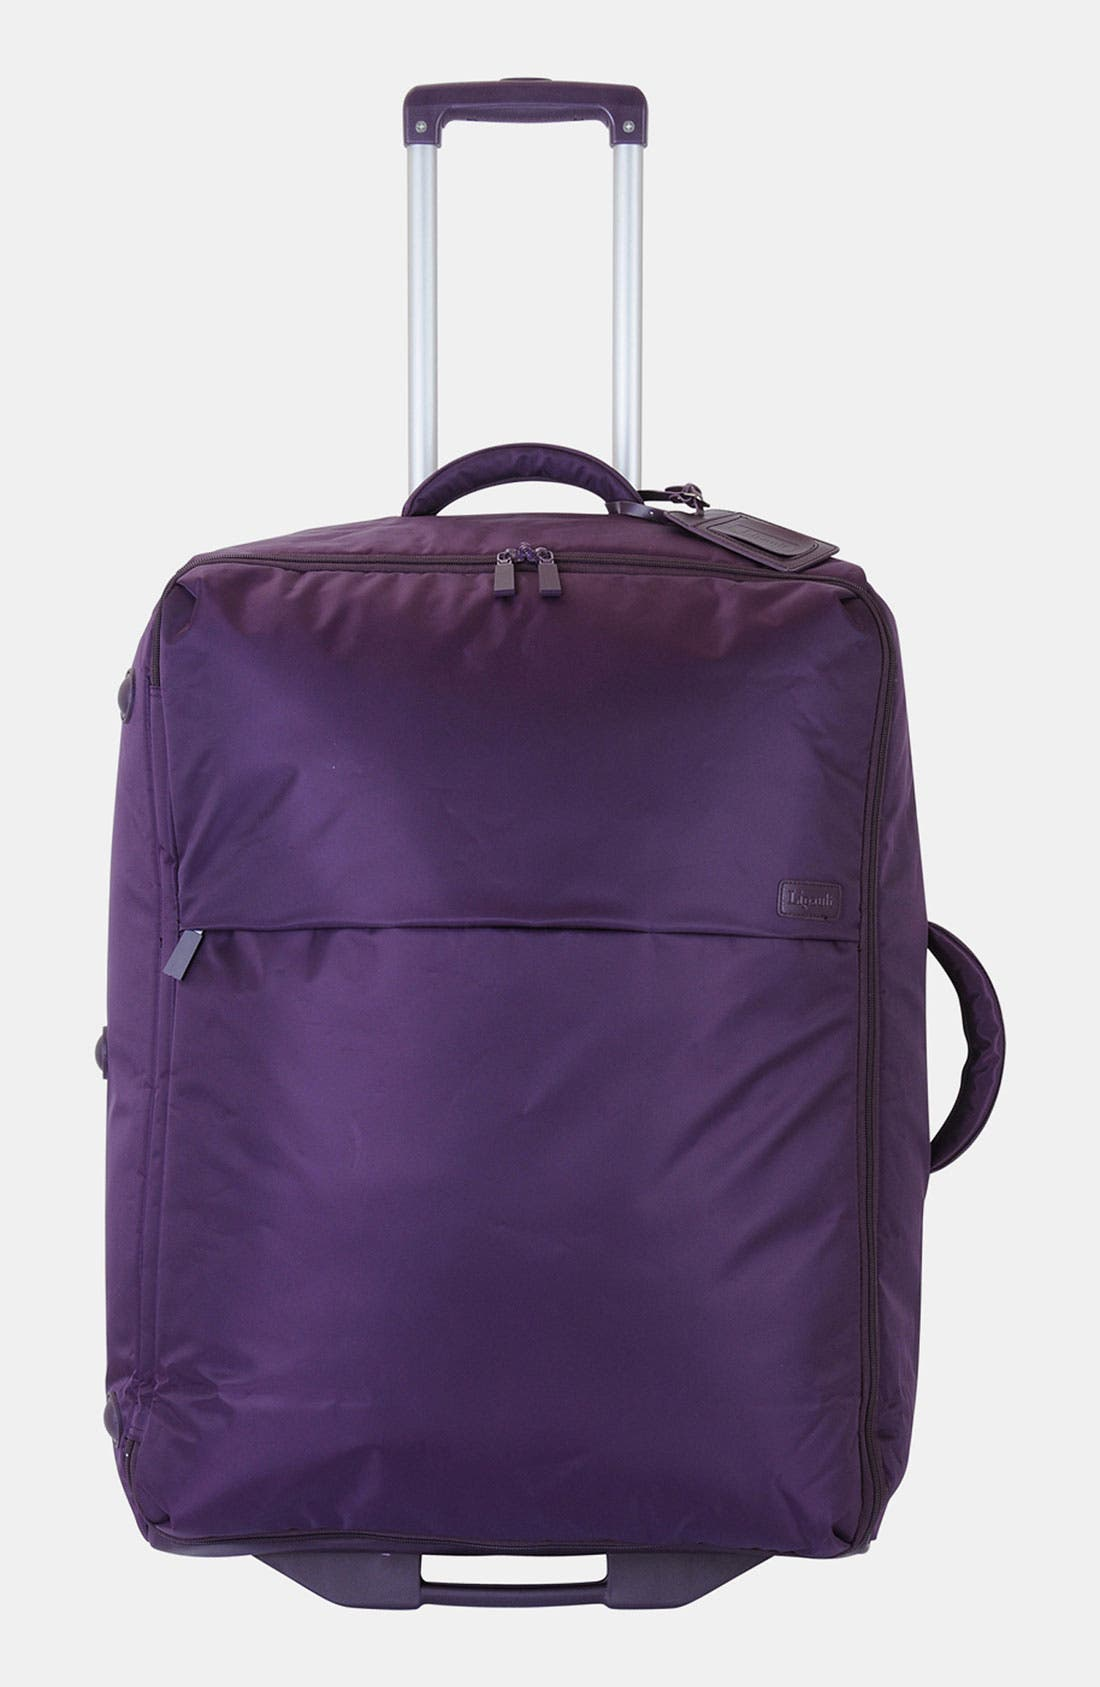 Main Image - LIPAULT Paris Foldable Rolling Packing Case (28 Inch)